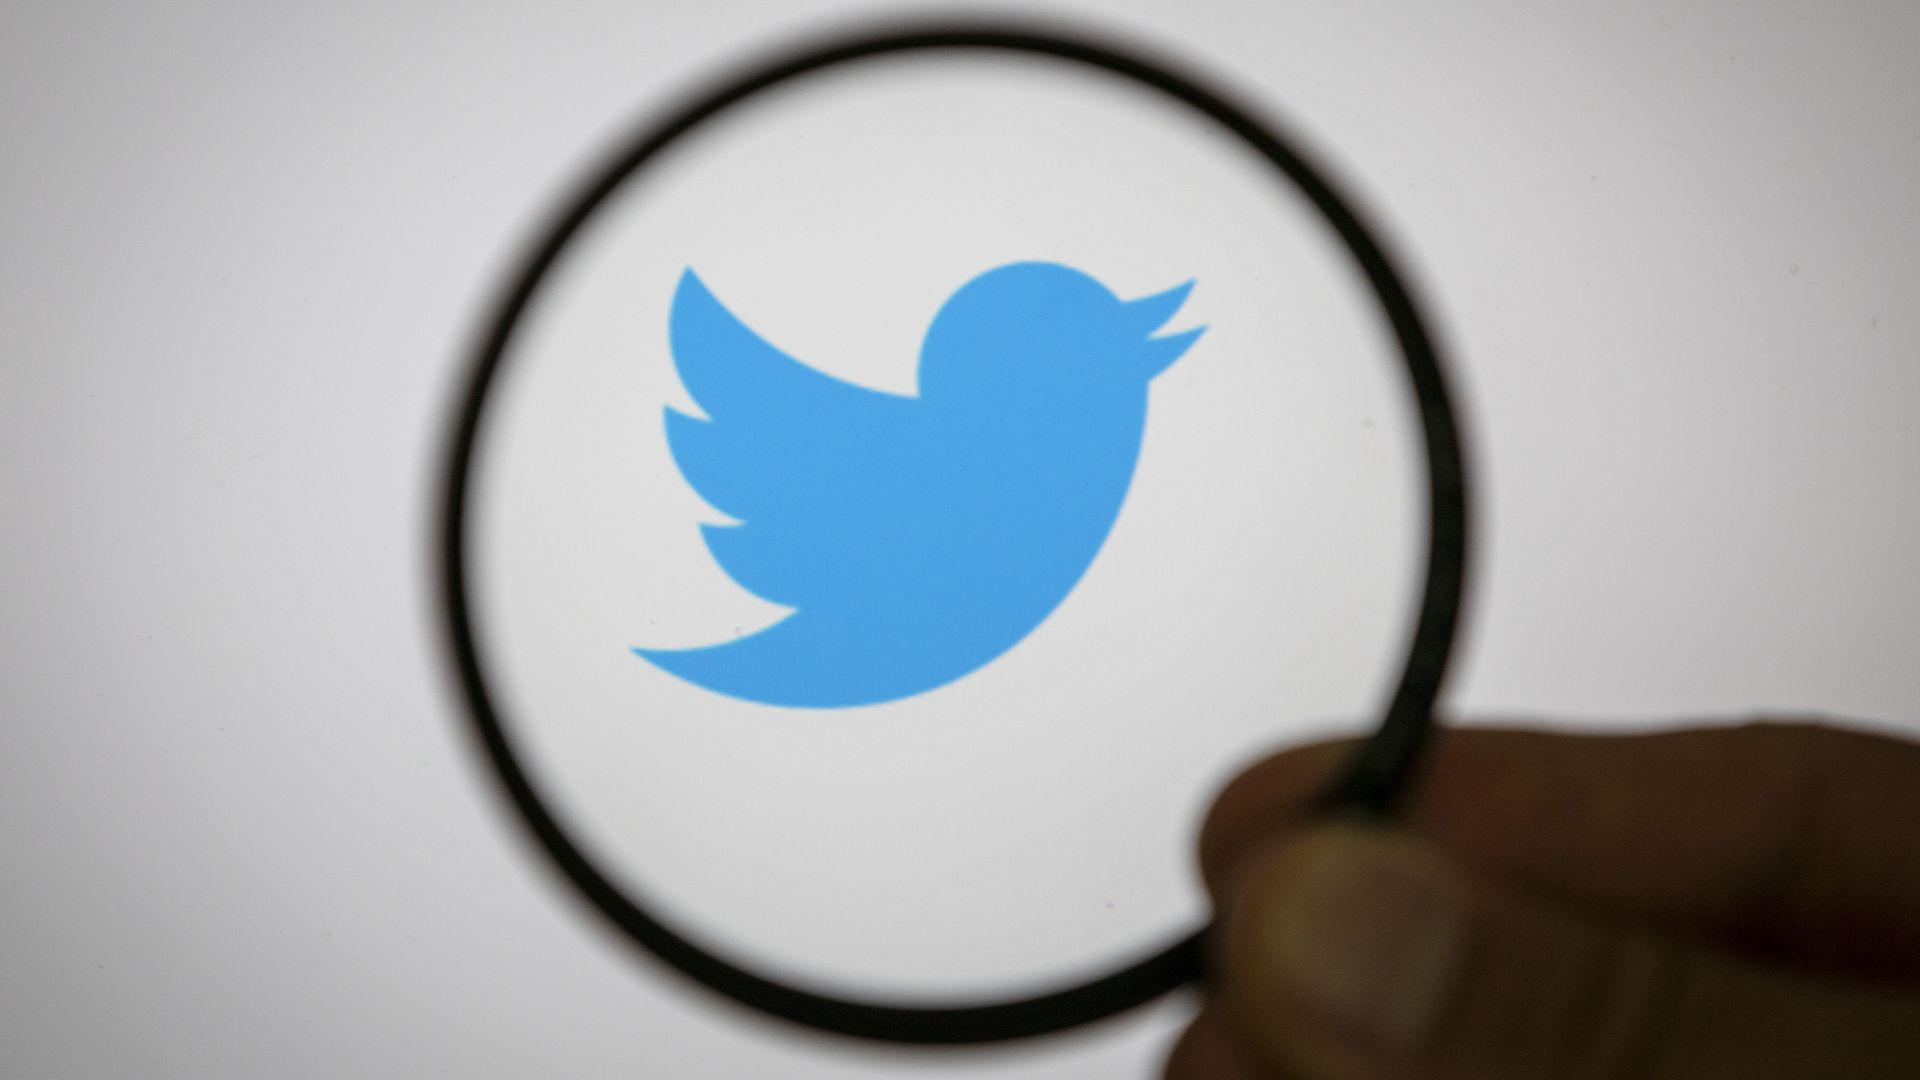 Twitter Loses 9 Million Monthly Active Users Axios